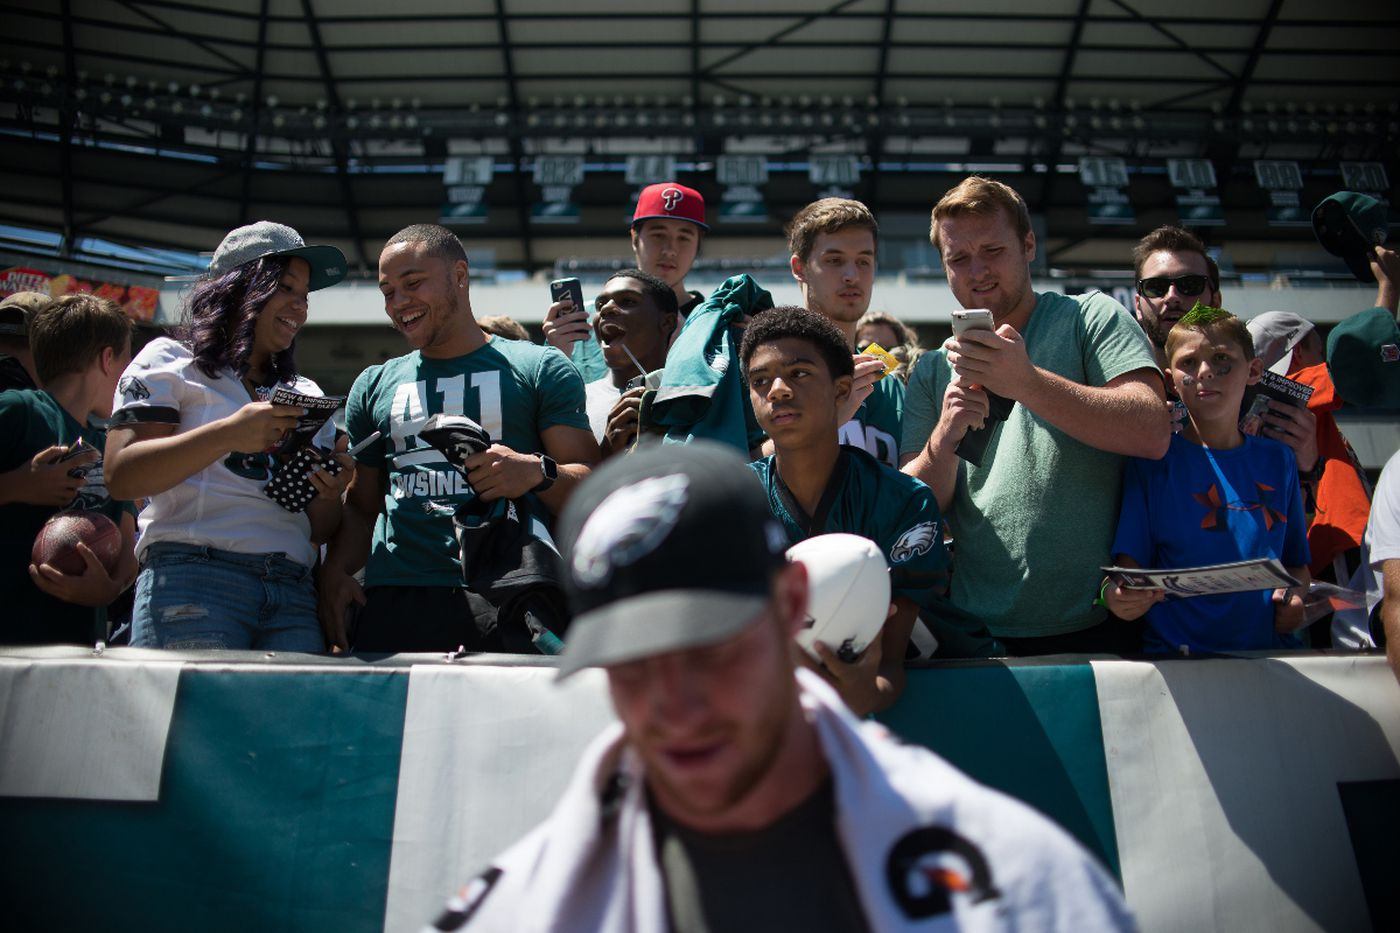 Eagles open practice: Time, details and how to follow along